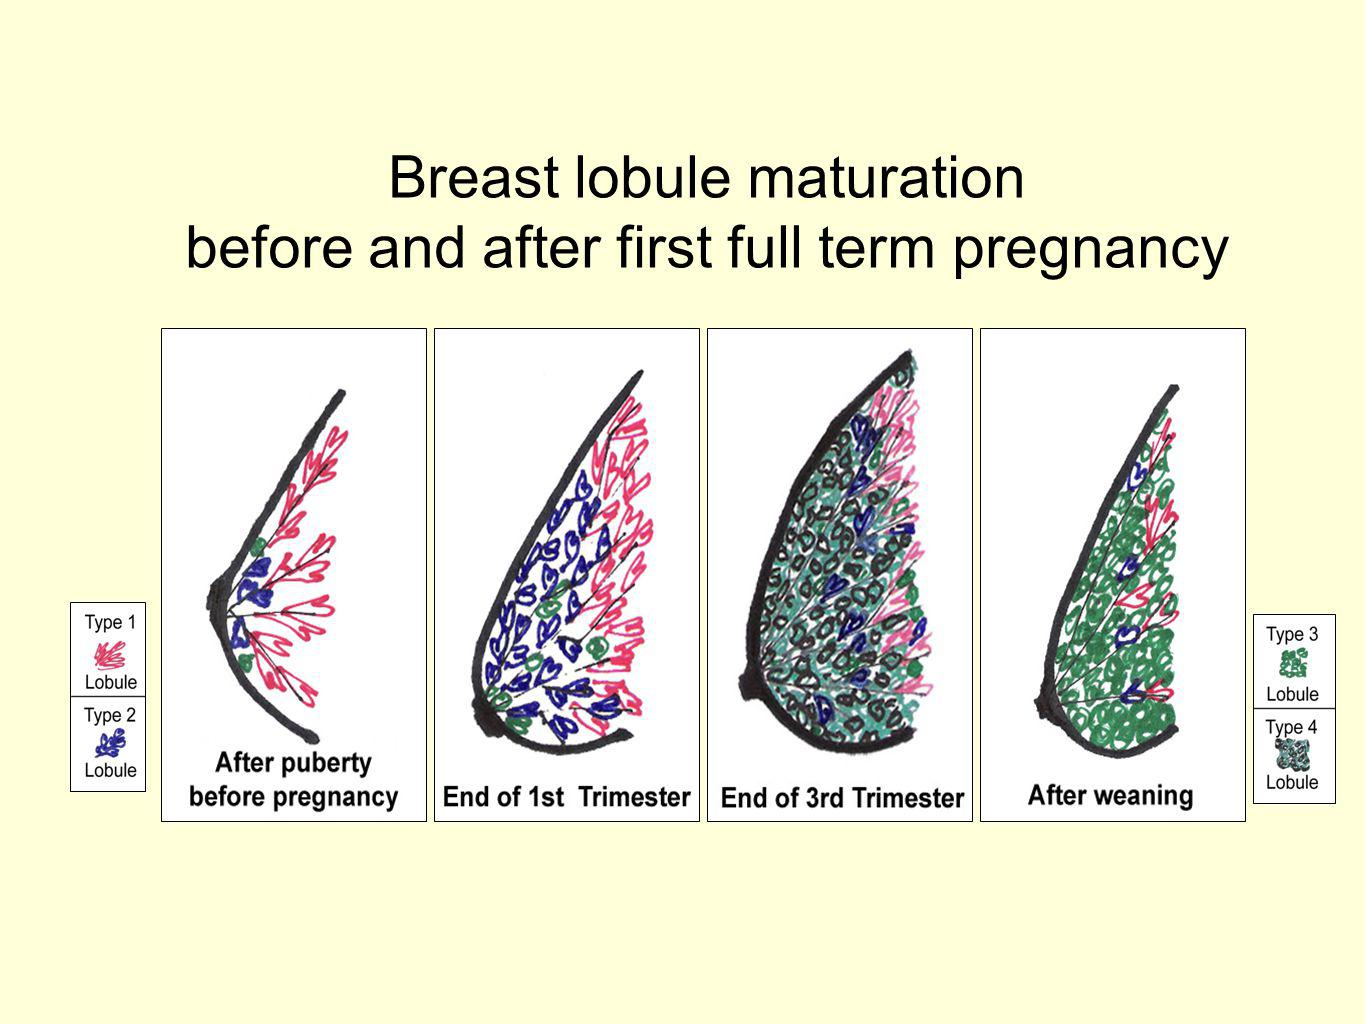 Breast lobule maturation before and after first full term pregnancy